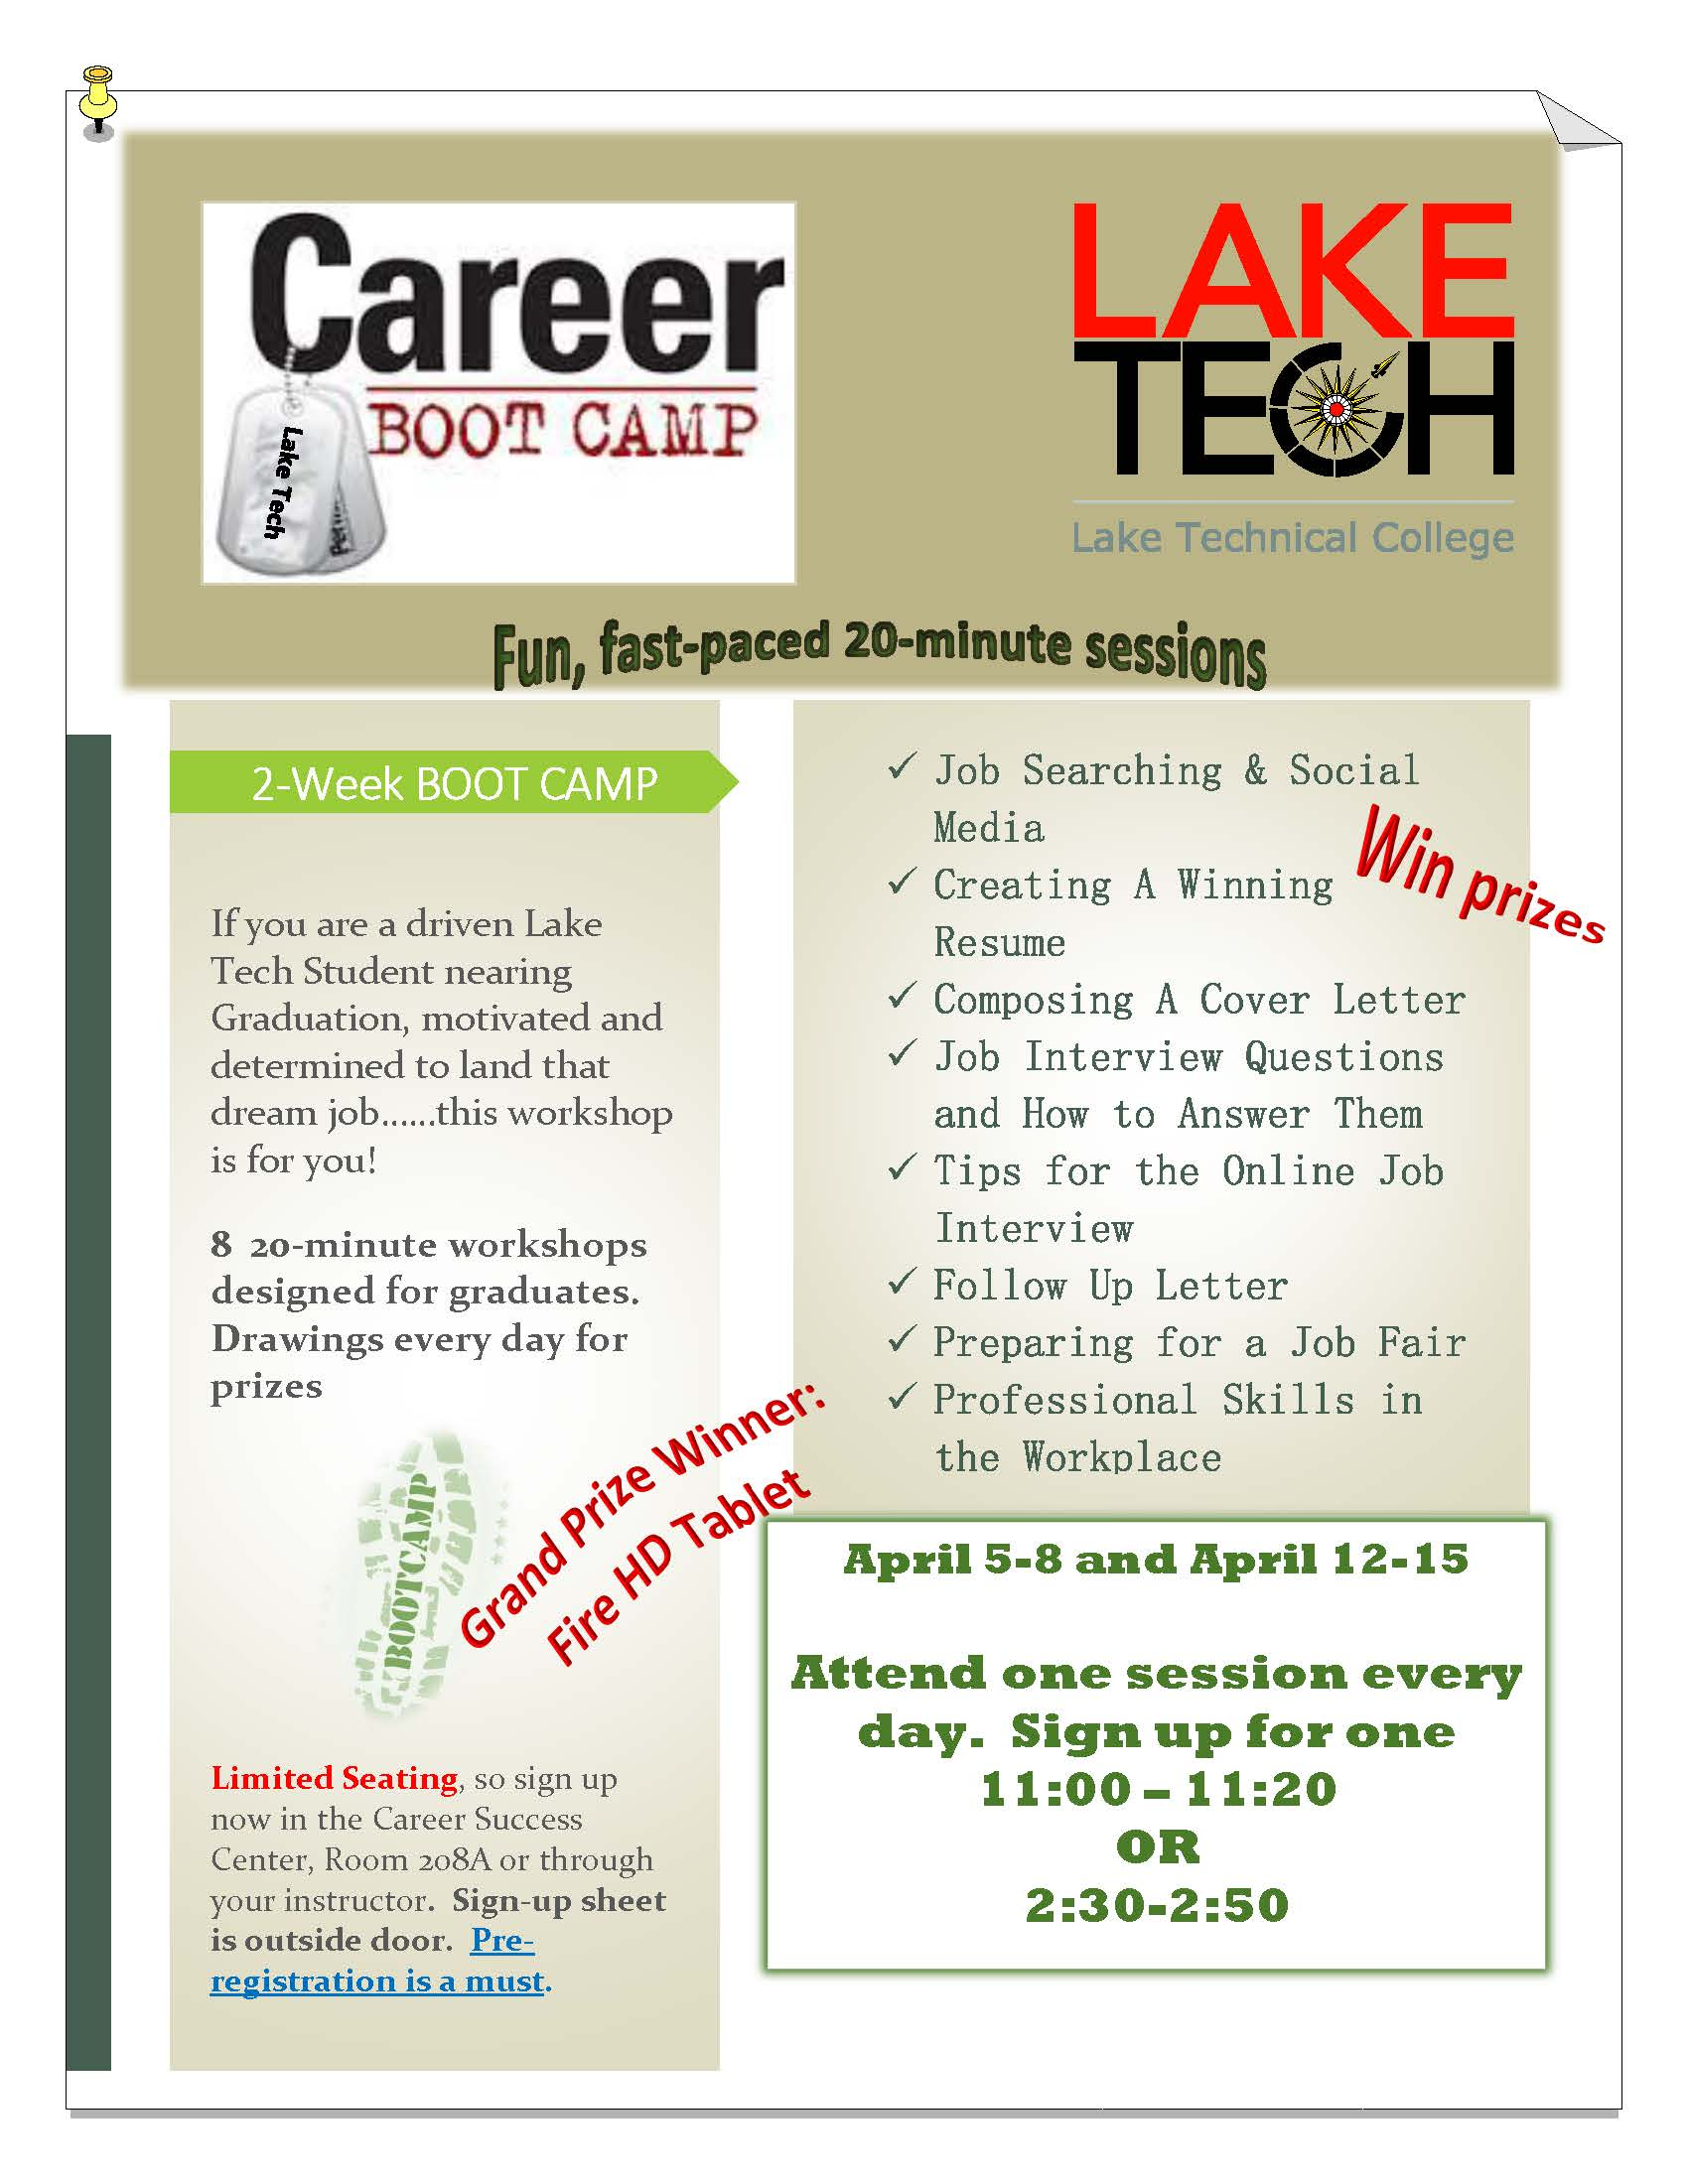 Career Boot Camp 032621 On Campus and in the Community ~ 03/26/21